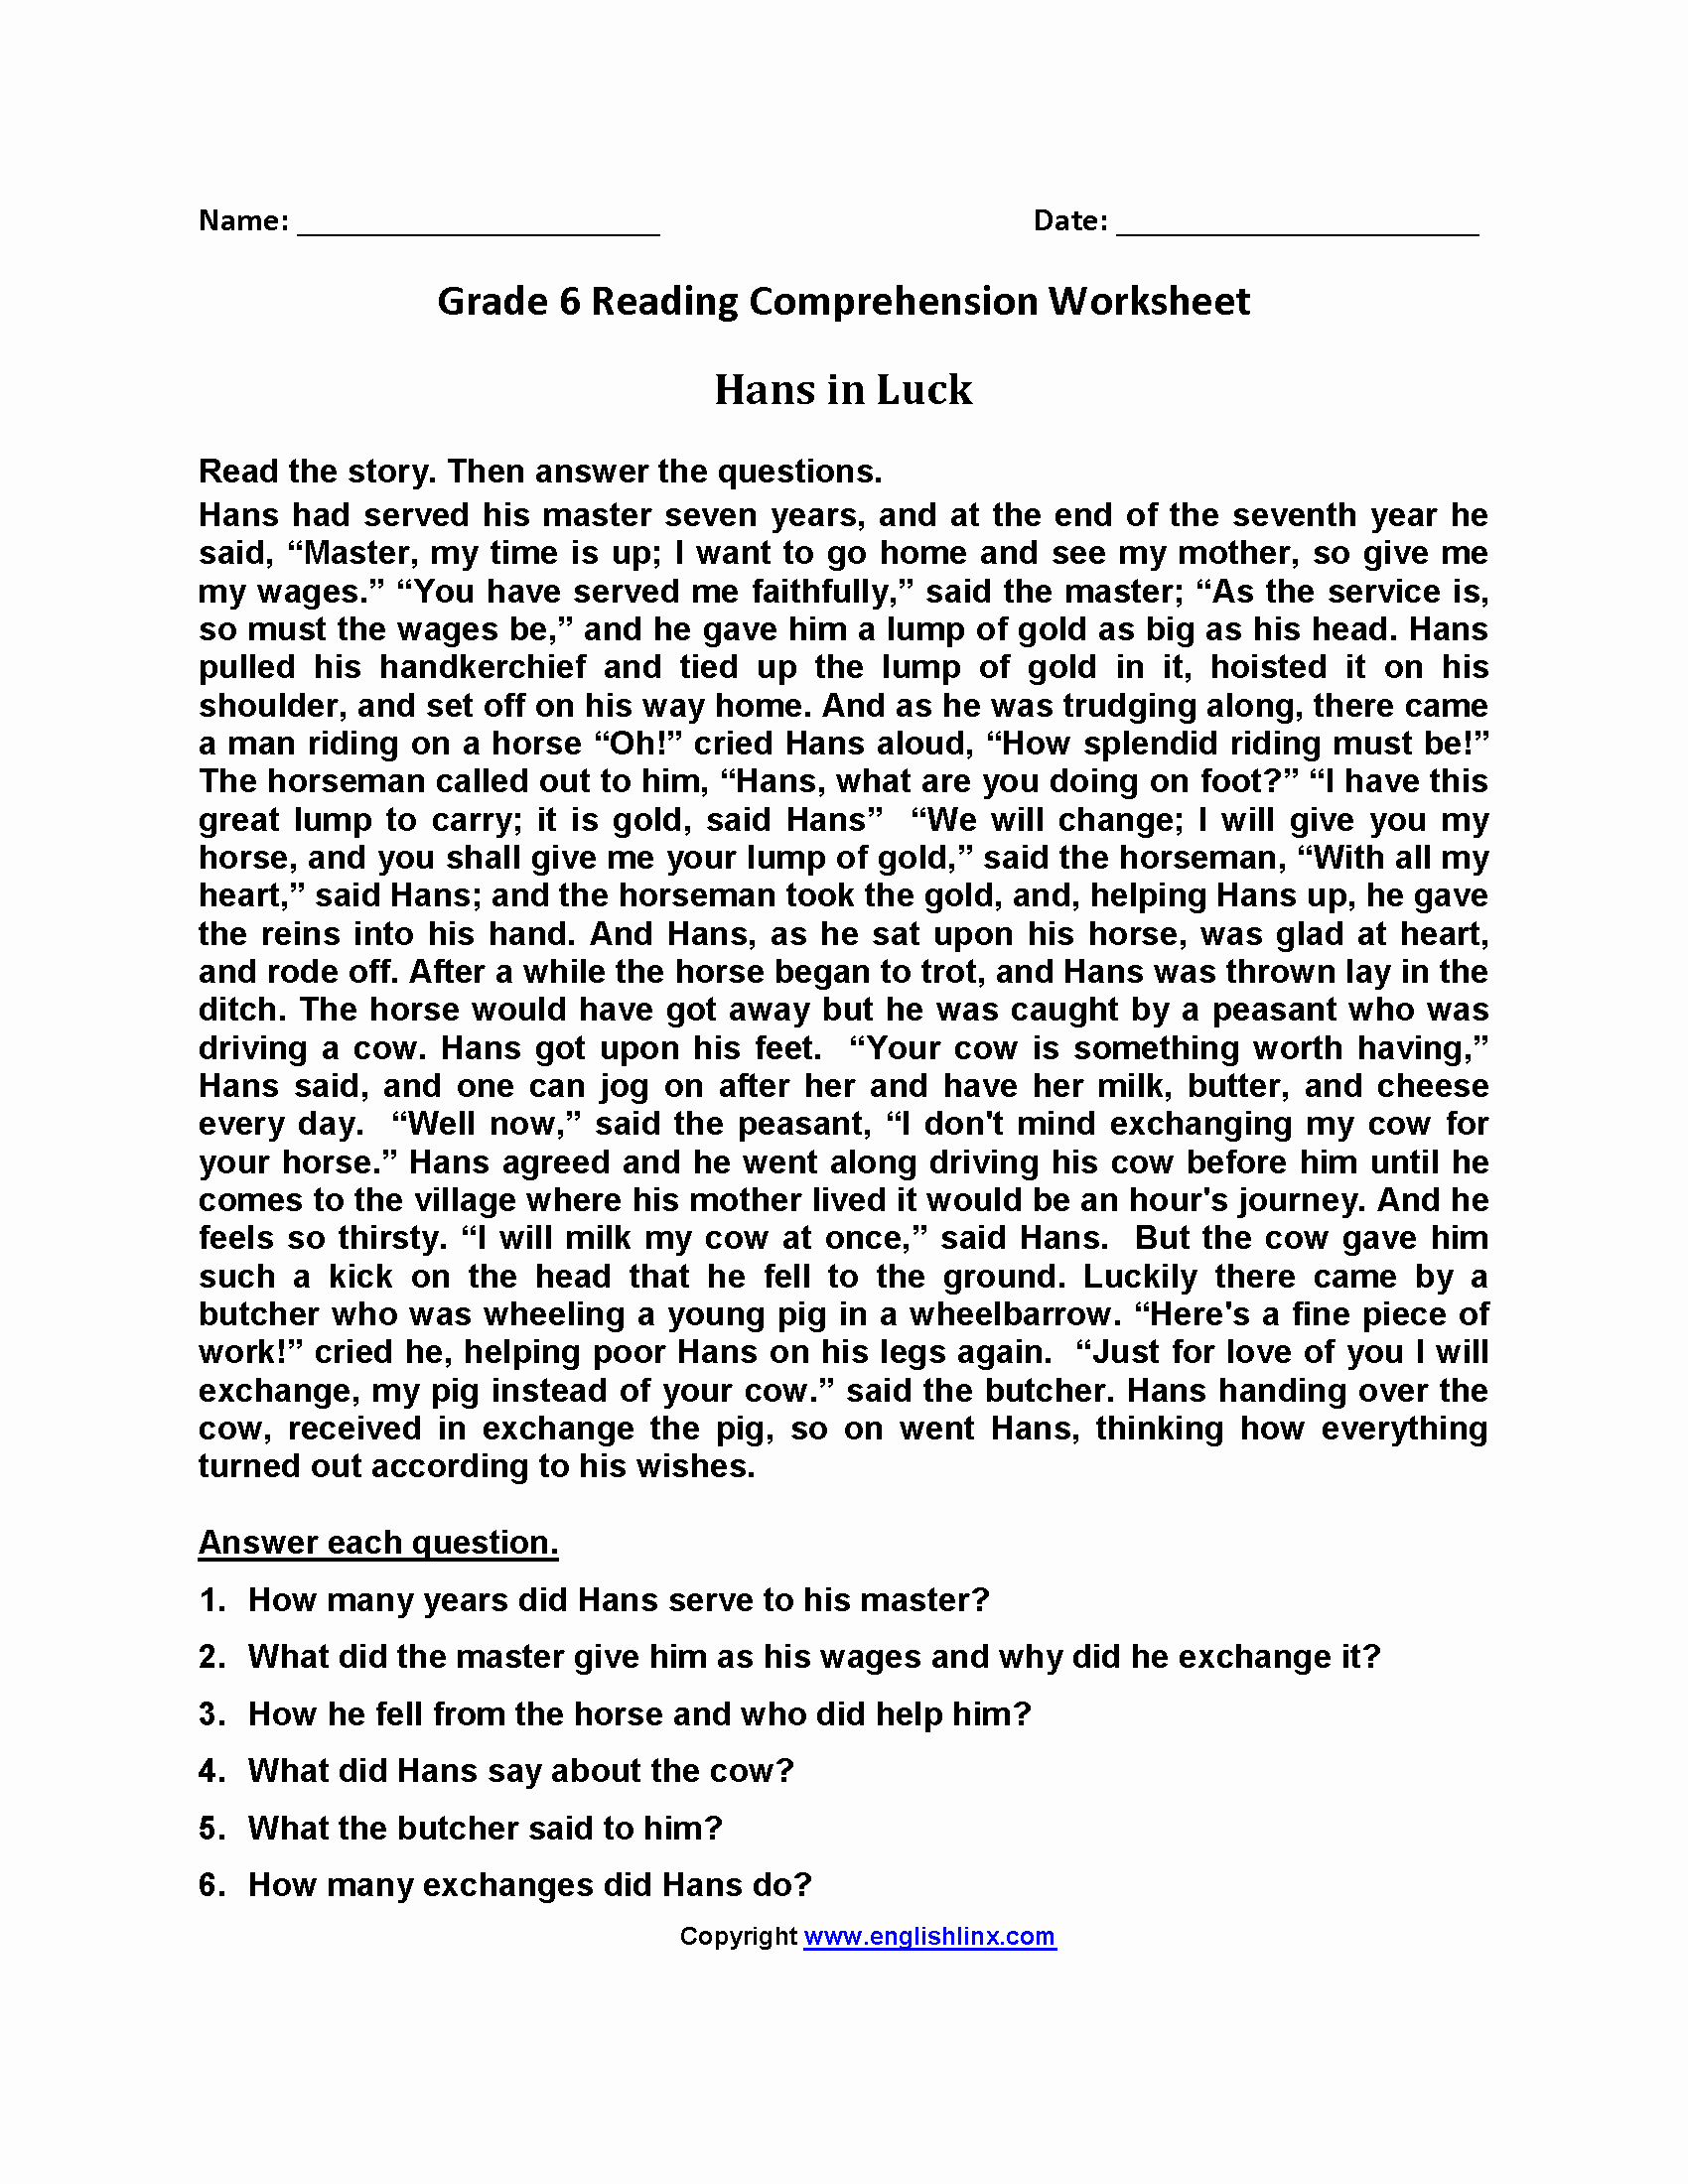 20 Free Printable Reading Comprehension Worksheets For 6Th Grade | Free Printable Reading Comprehension Worksheets Grade 5